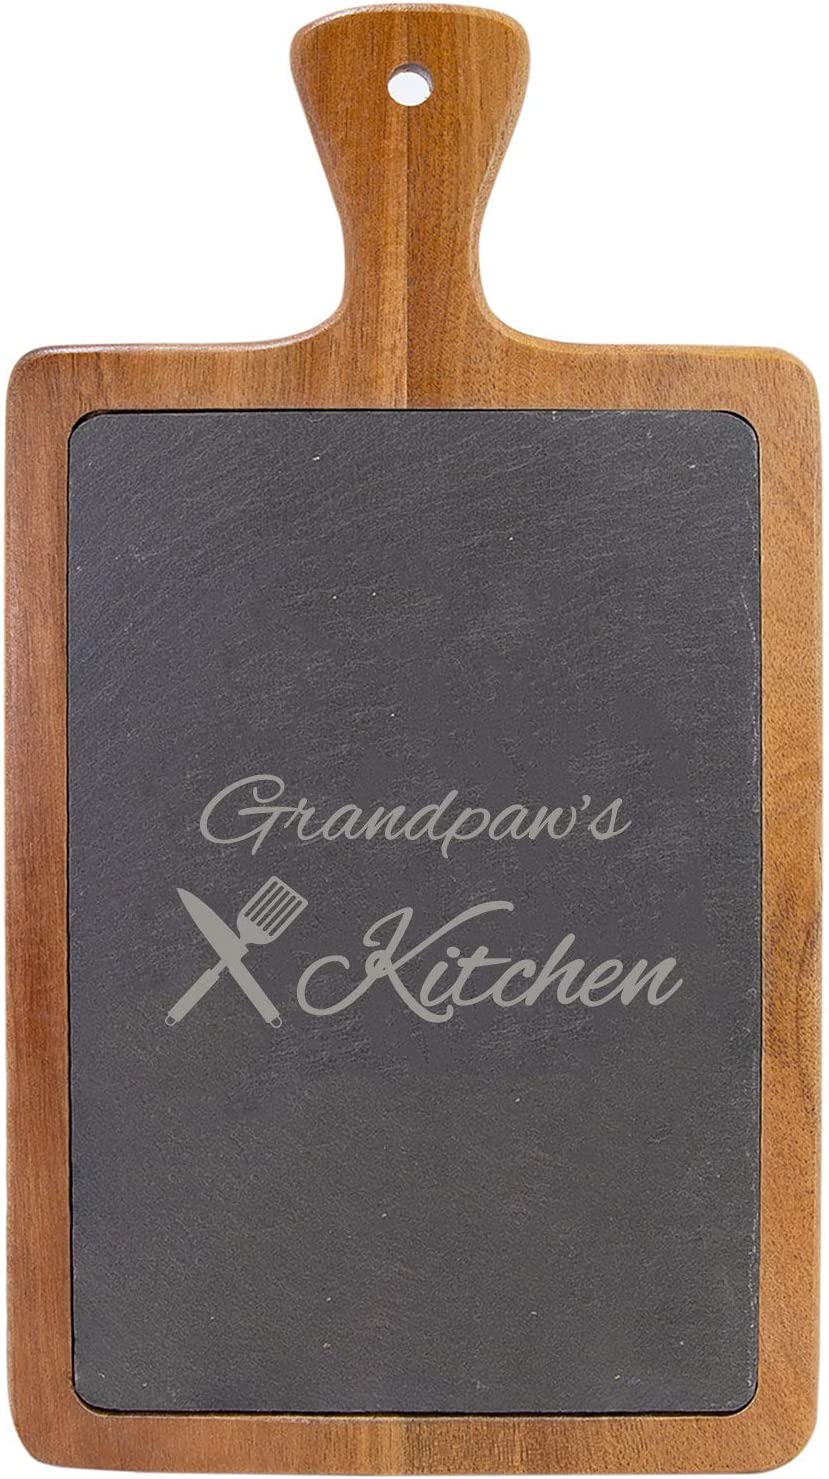 Grandpaw's Kitchen - 13 Sale Special Price 1 4-inch Slate Wood 7-inch Slab Acacia x OFFicial shop